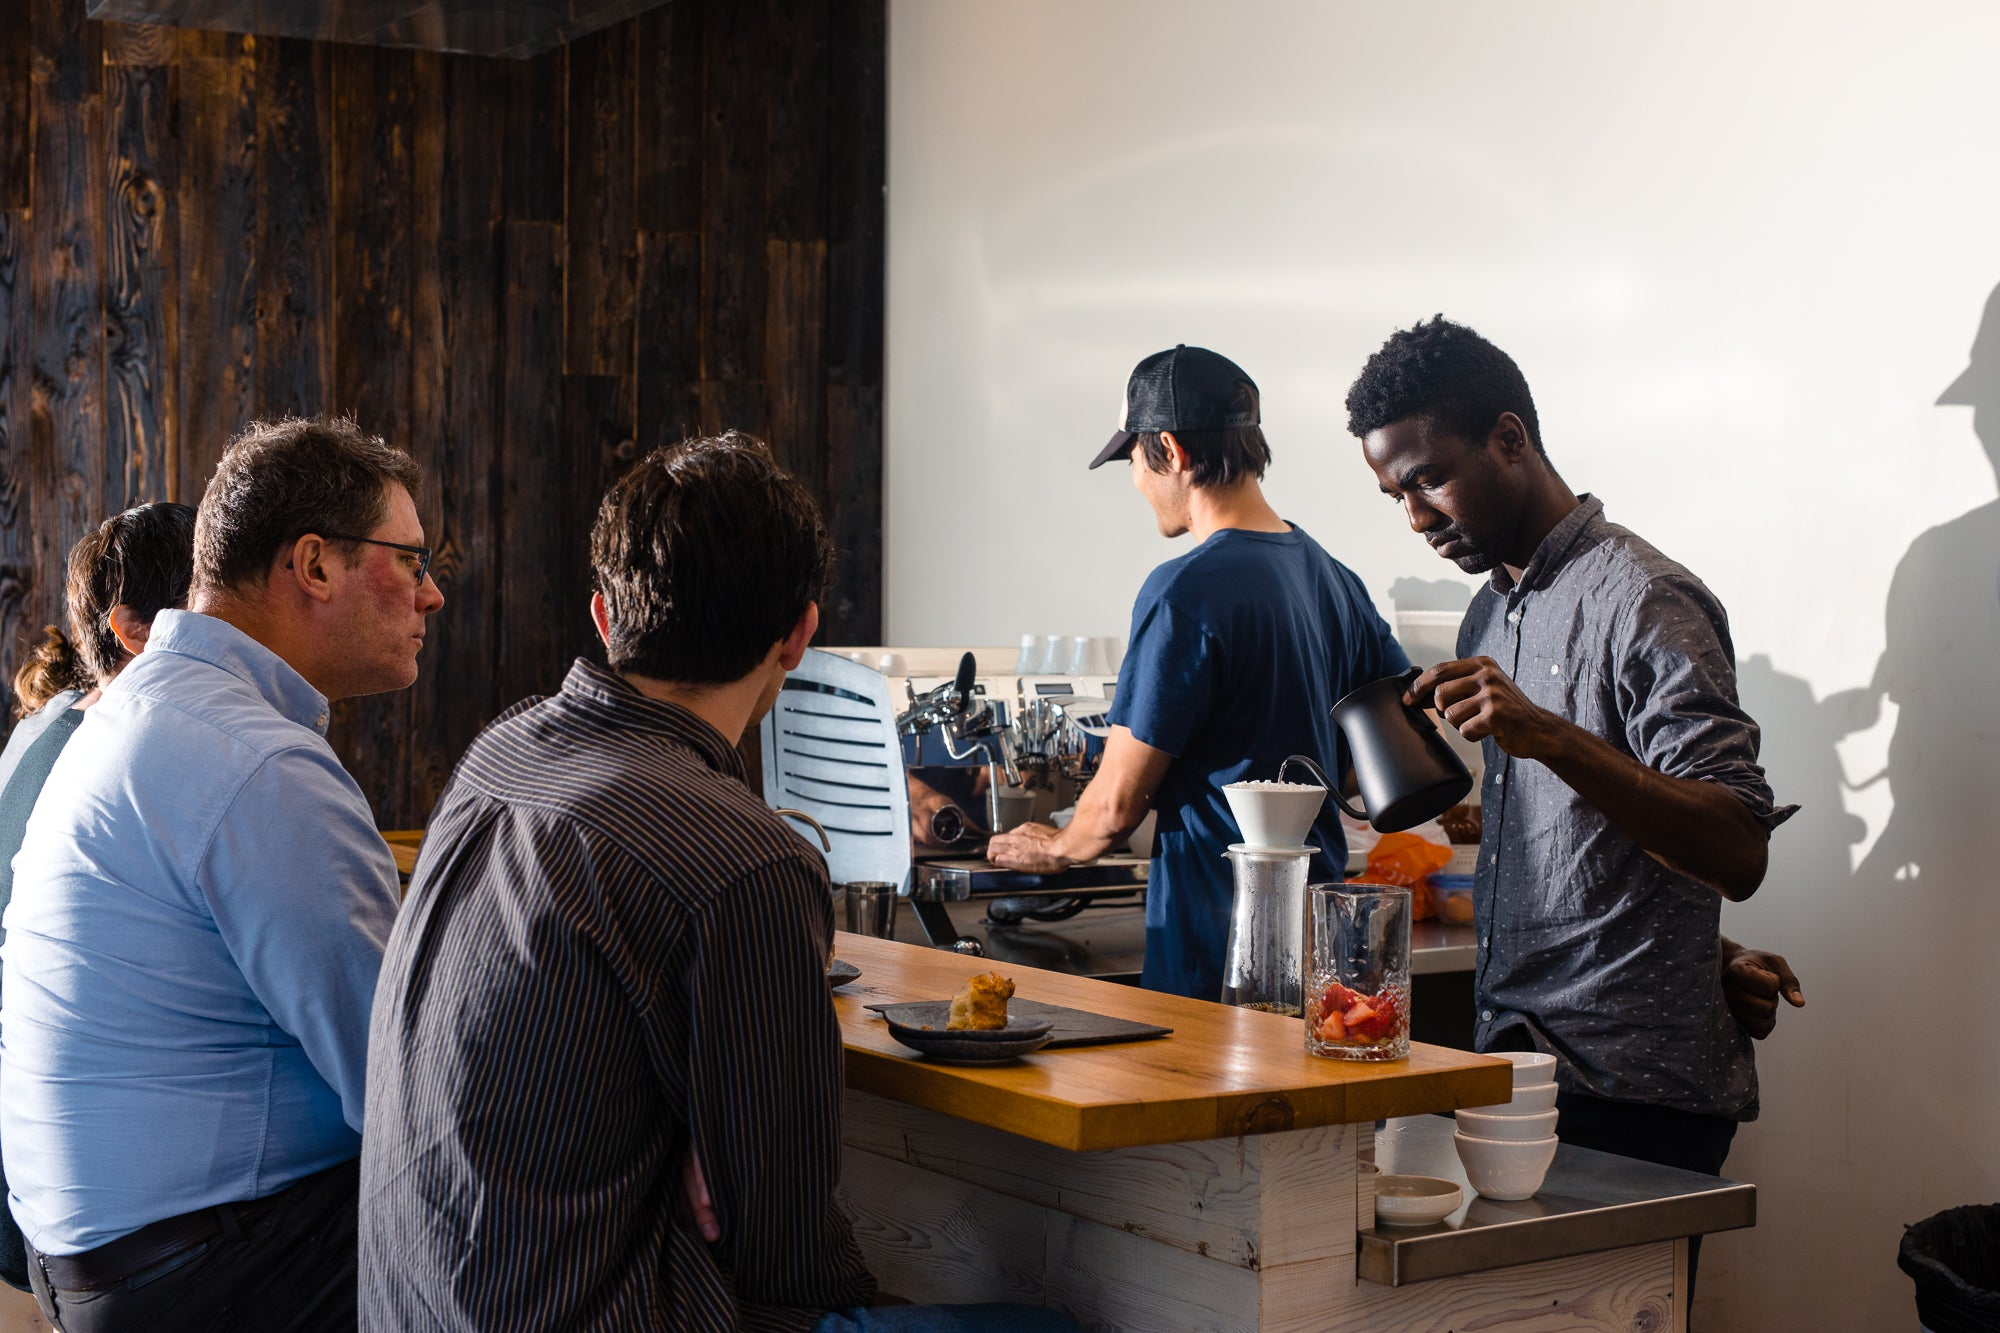 Omakase tasting bar At La Marzocco Cafe KEXP (Feb 15-Mar 17)